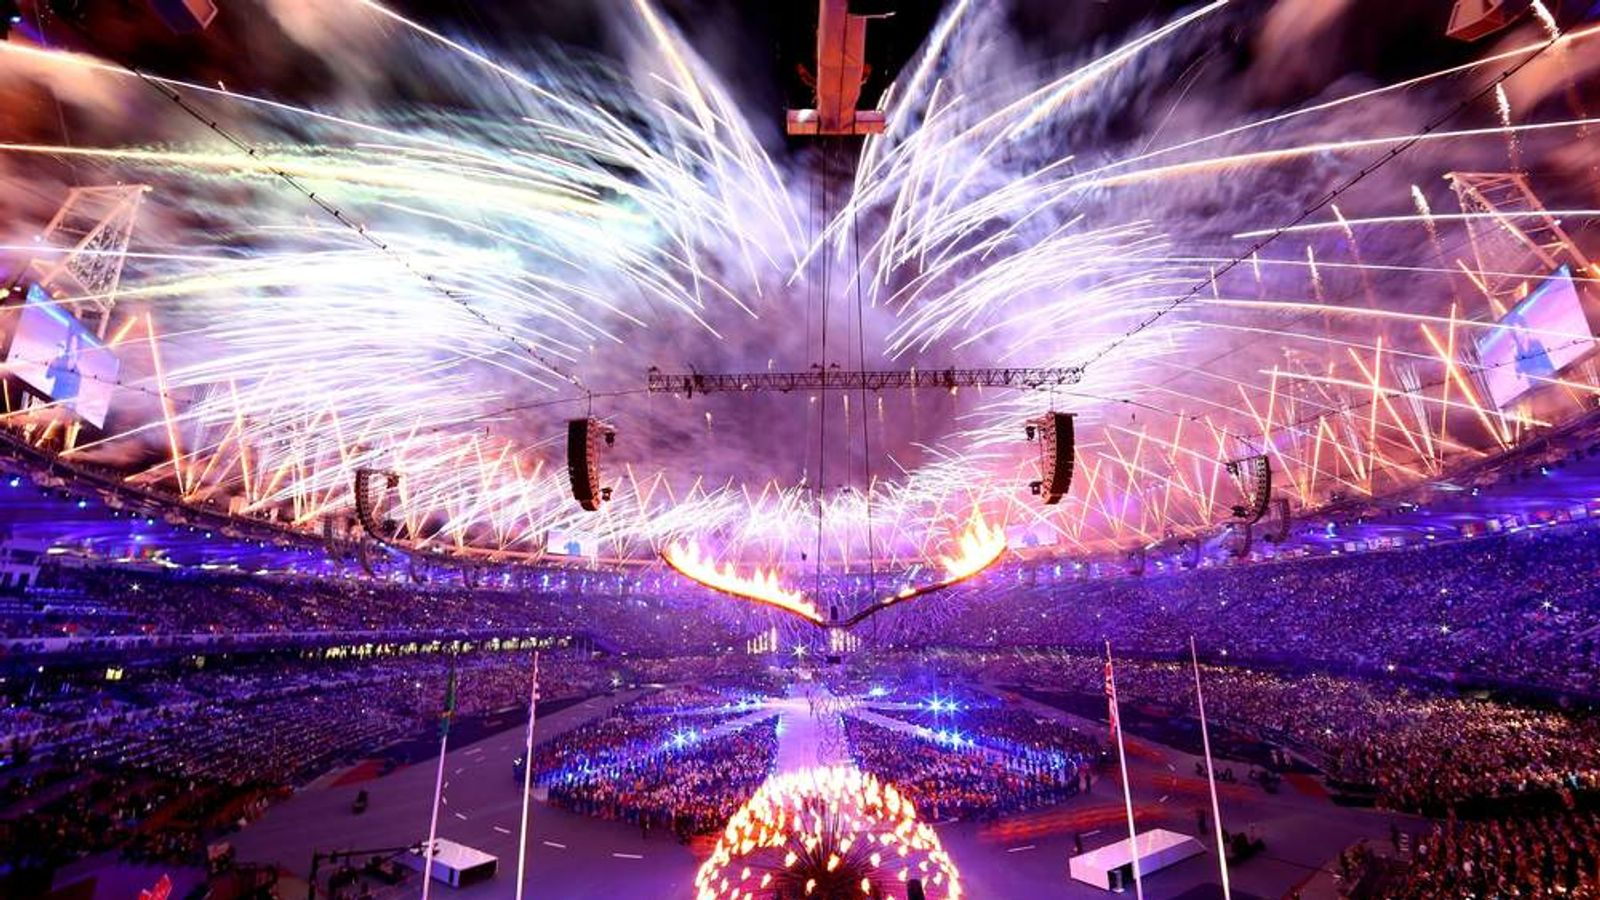 Fireworks expload as the Olympic Cauldron is slowly lowered during the Closing Ceremony on Day 16 of the London 2012 Olympic Games